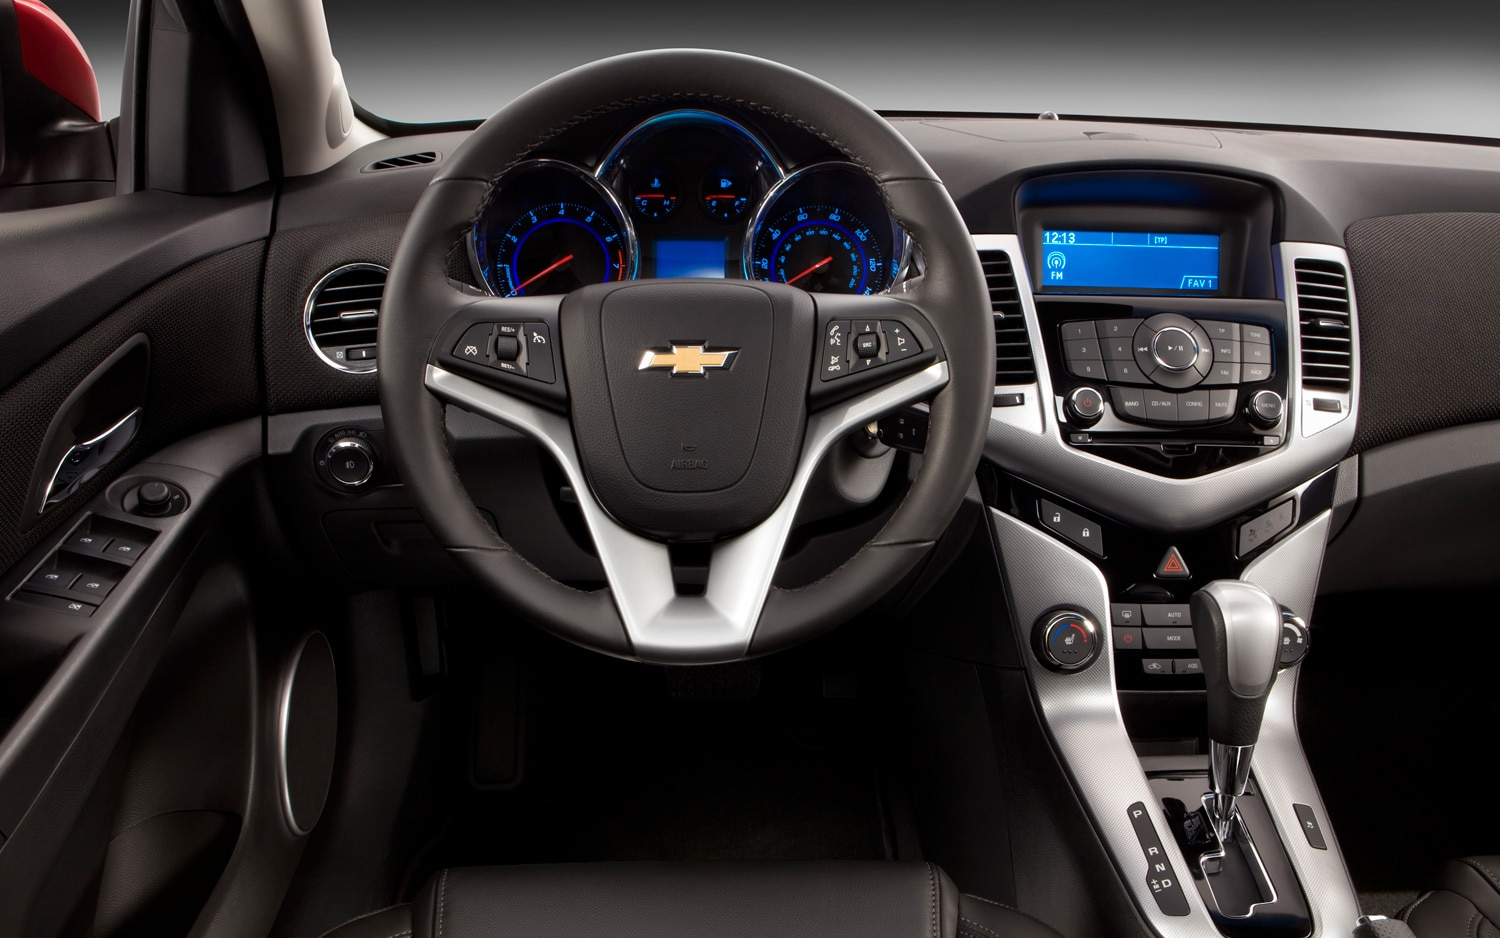 Cruze 2012 chevy cruze interior : 2013 Chevrolet Cruze Receives Single-Stage Vented Airbag, Five ...